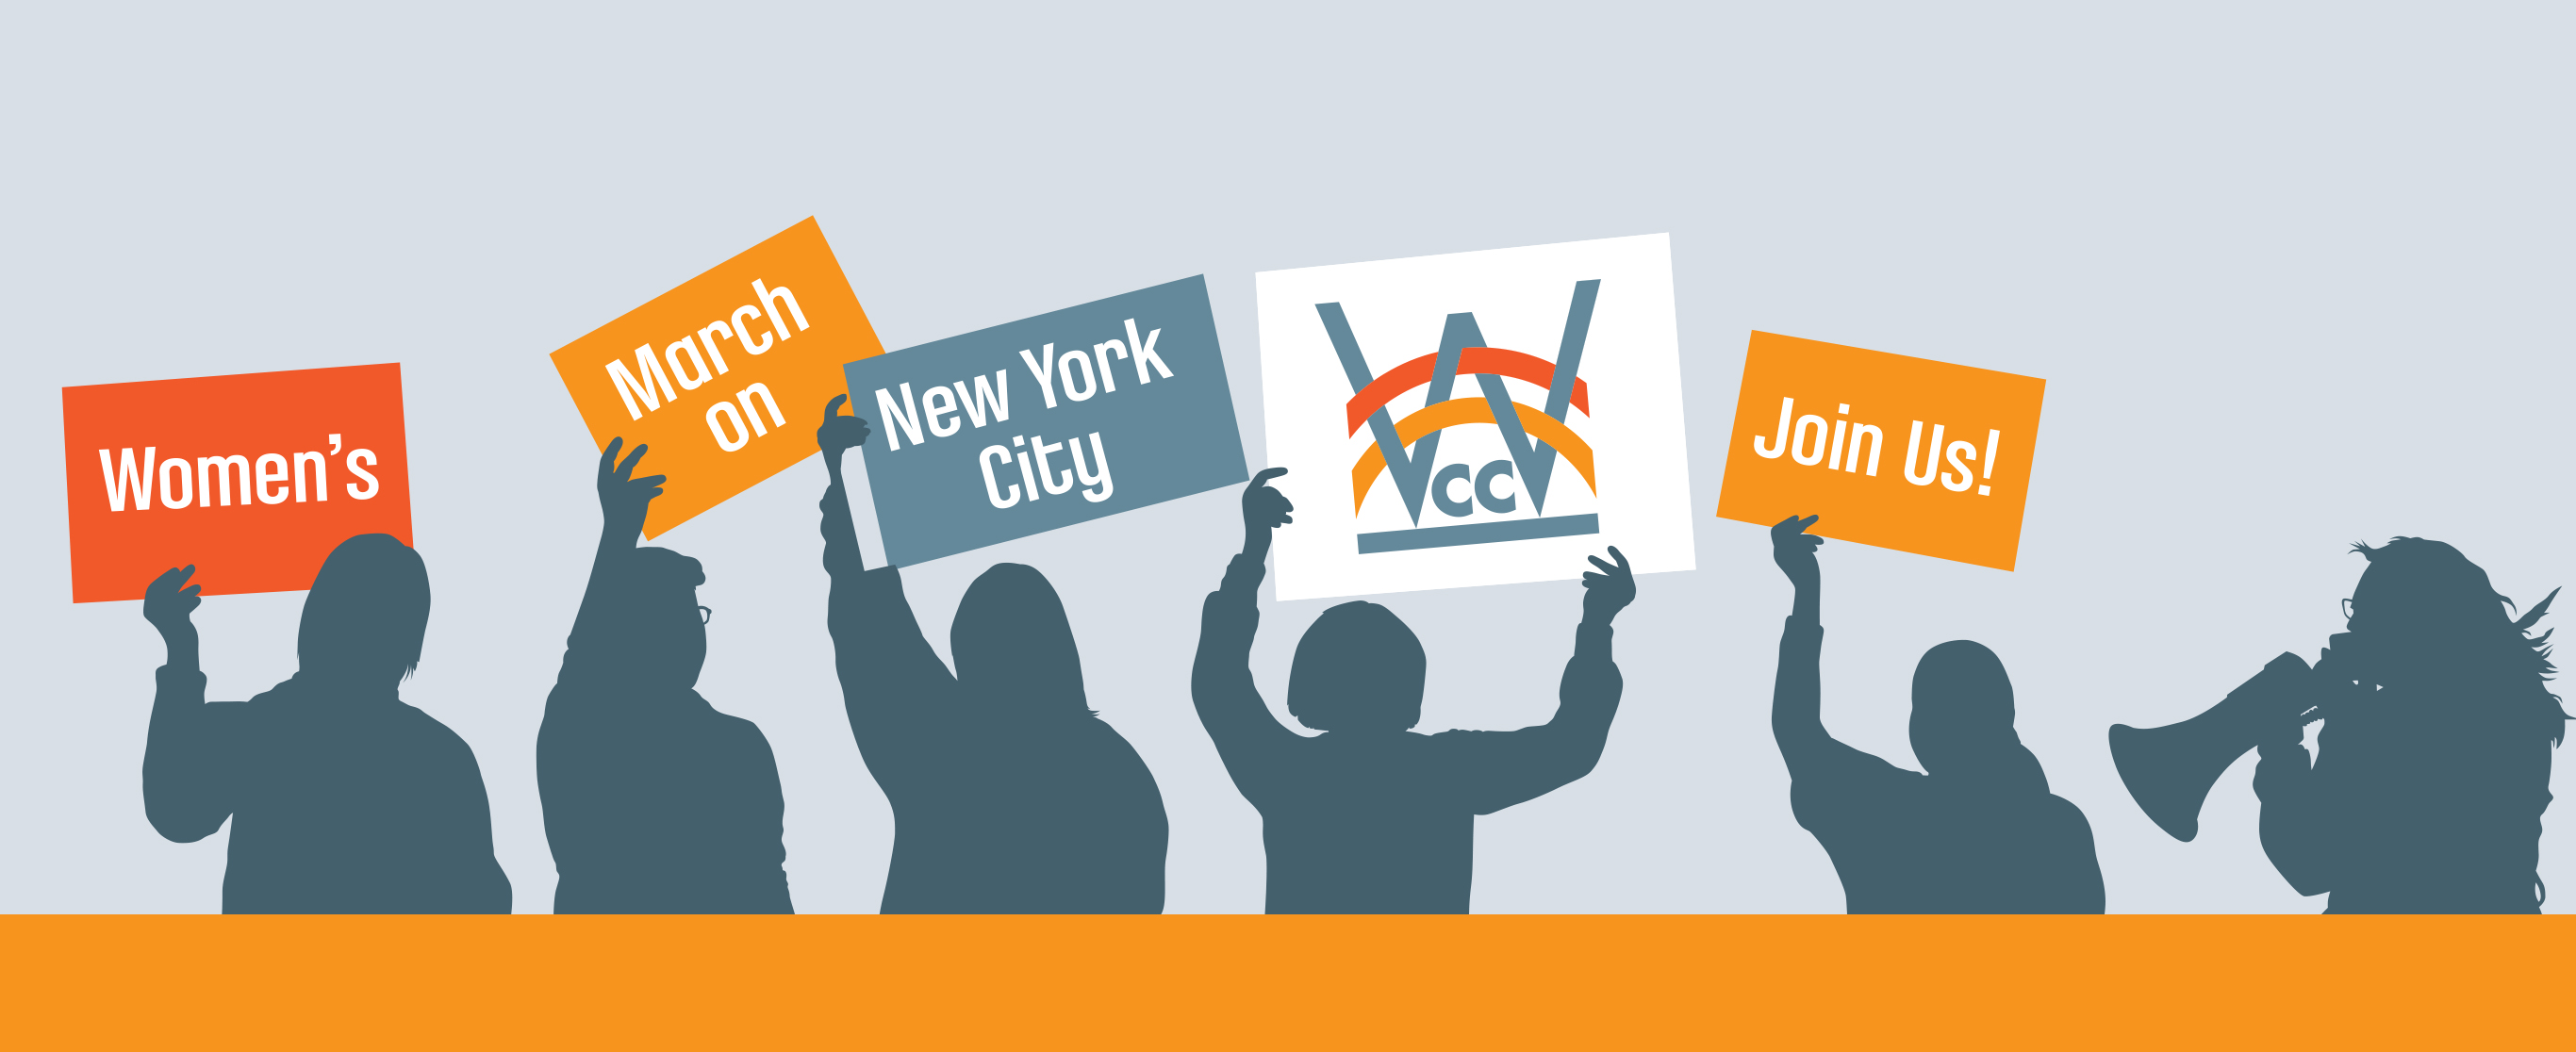 Women's March on New York City|Join WCC and march in support of equality and to promote civil rights for every human